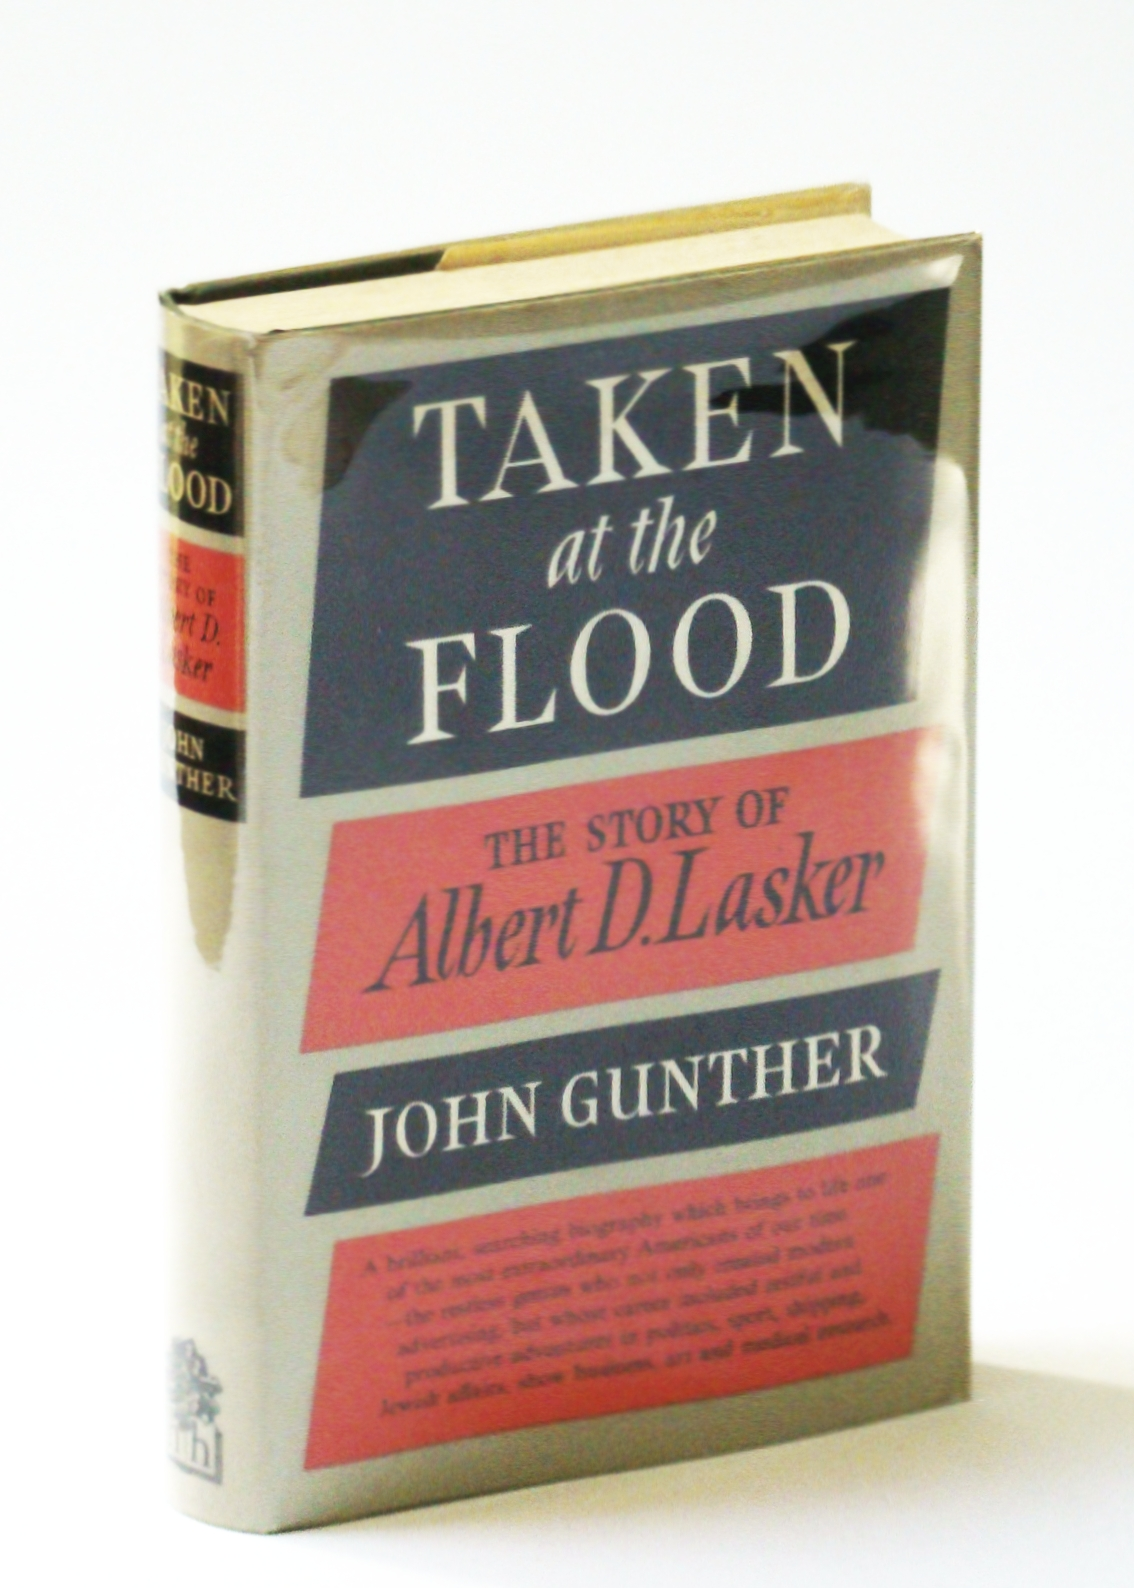 Image for Taken at the Flood: The Story of Albert D. Lasker